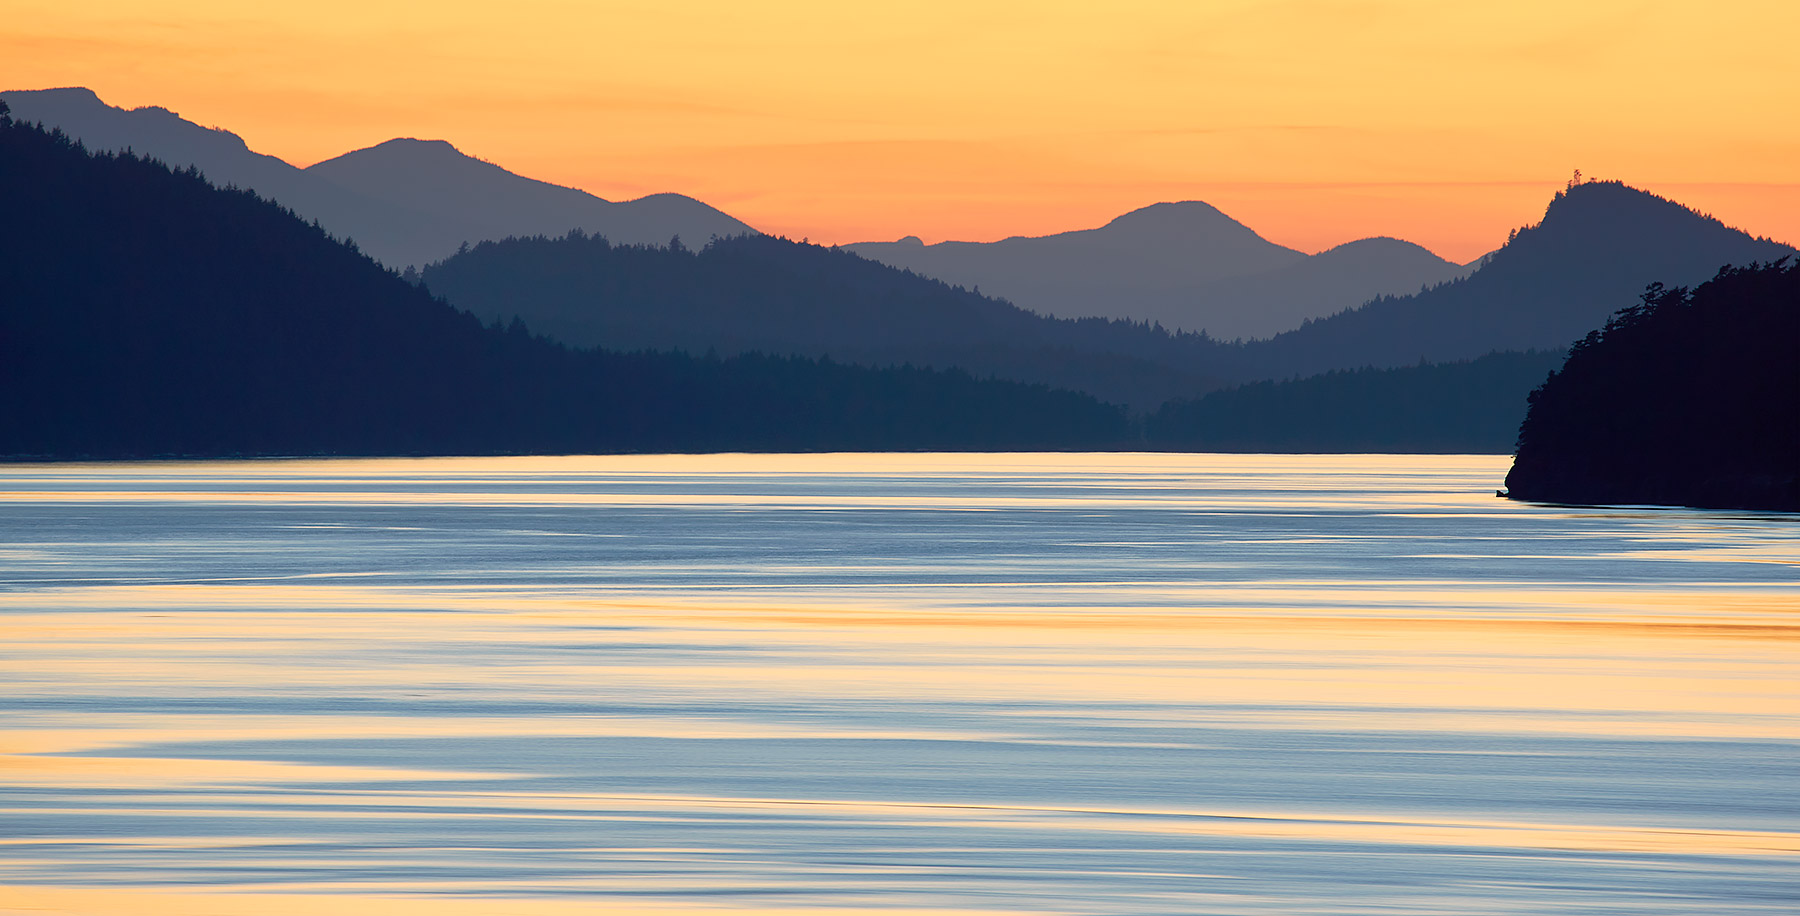 Gulf Islands Revisited ©johncameron.ca